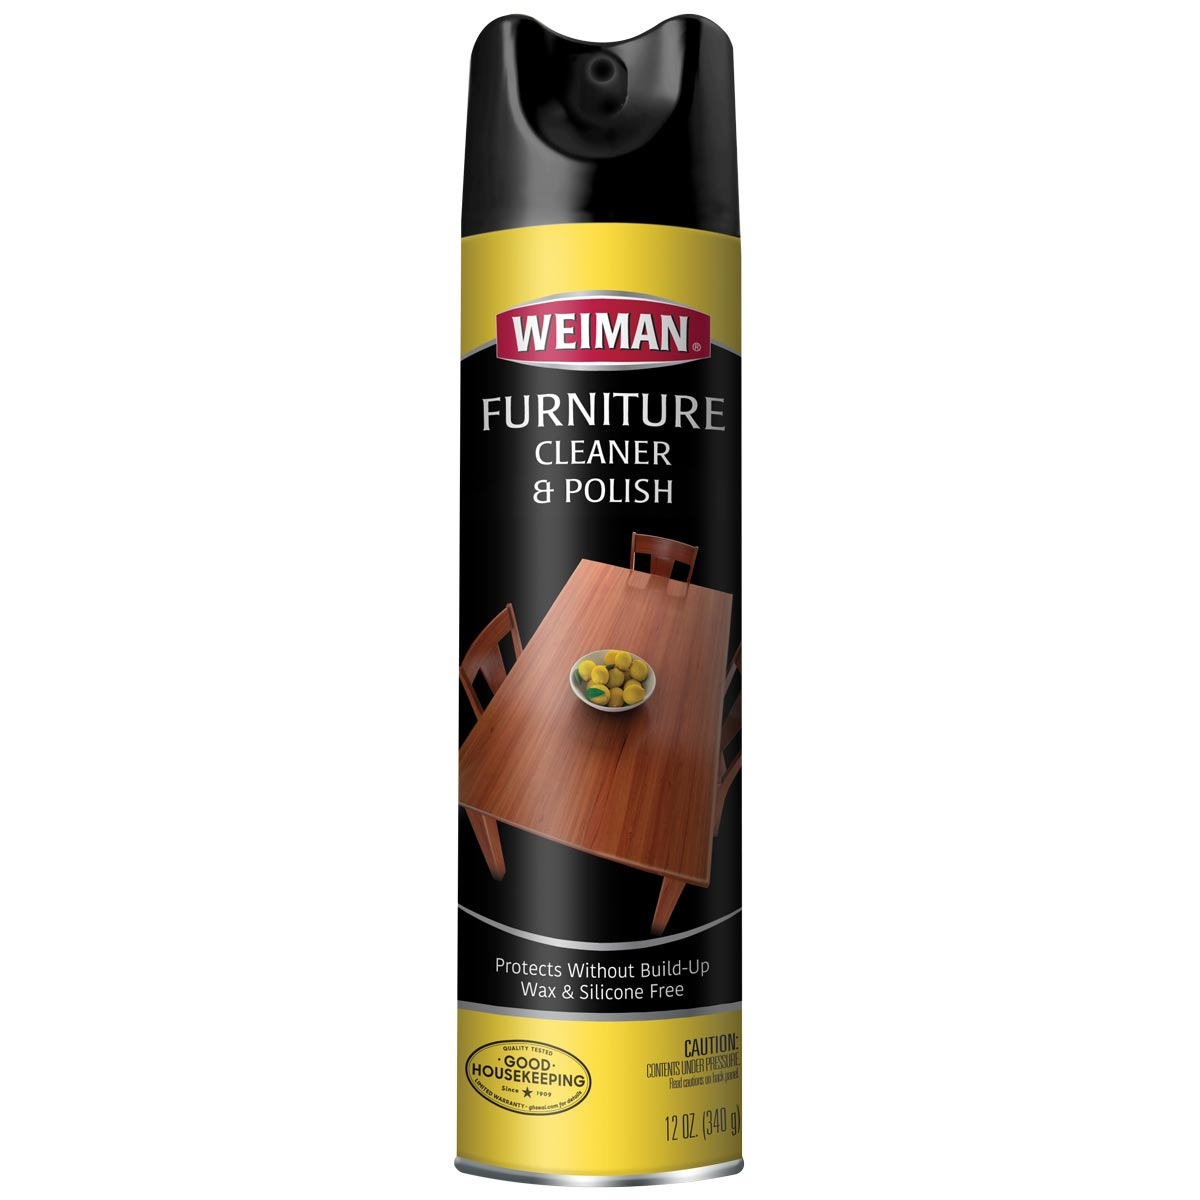 https://googone.com/media/catalog/product/w/e/weiman-furniture-cleaner-_-polish_front_2.jpg